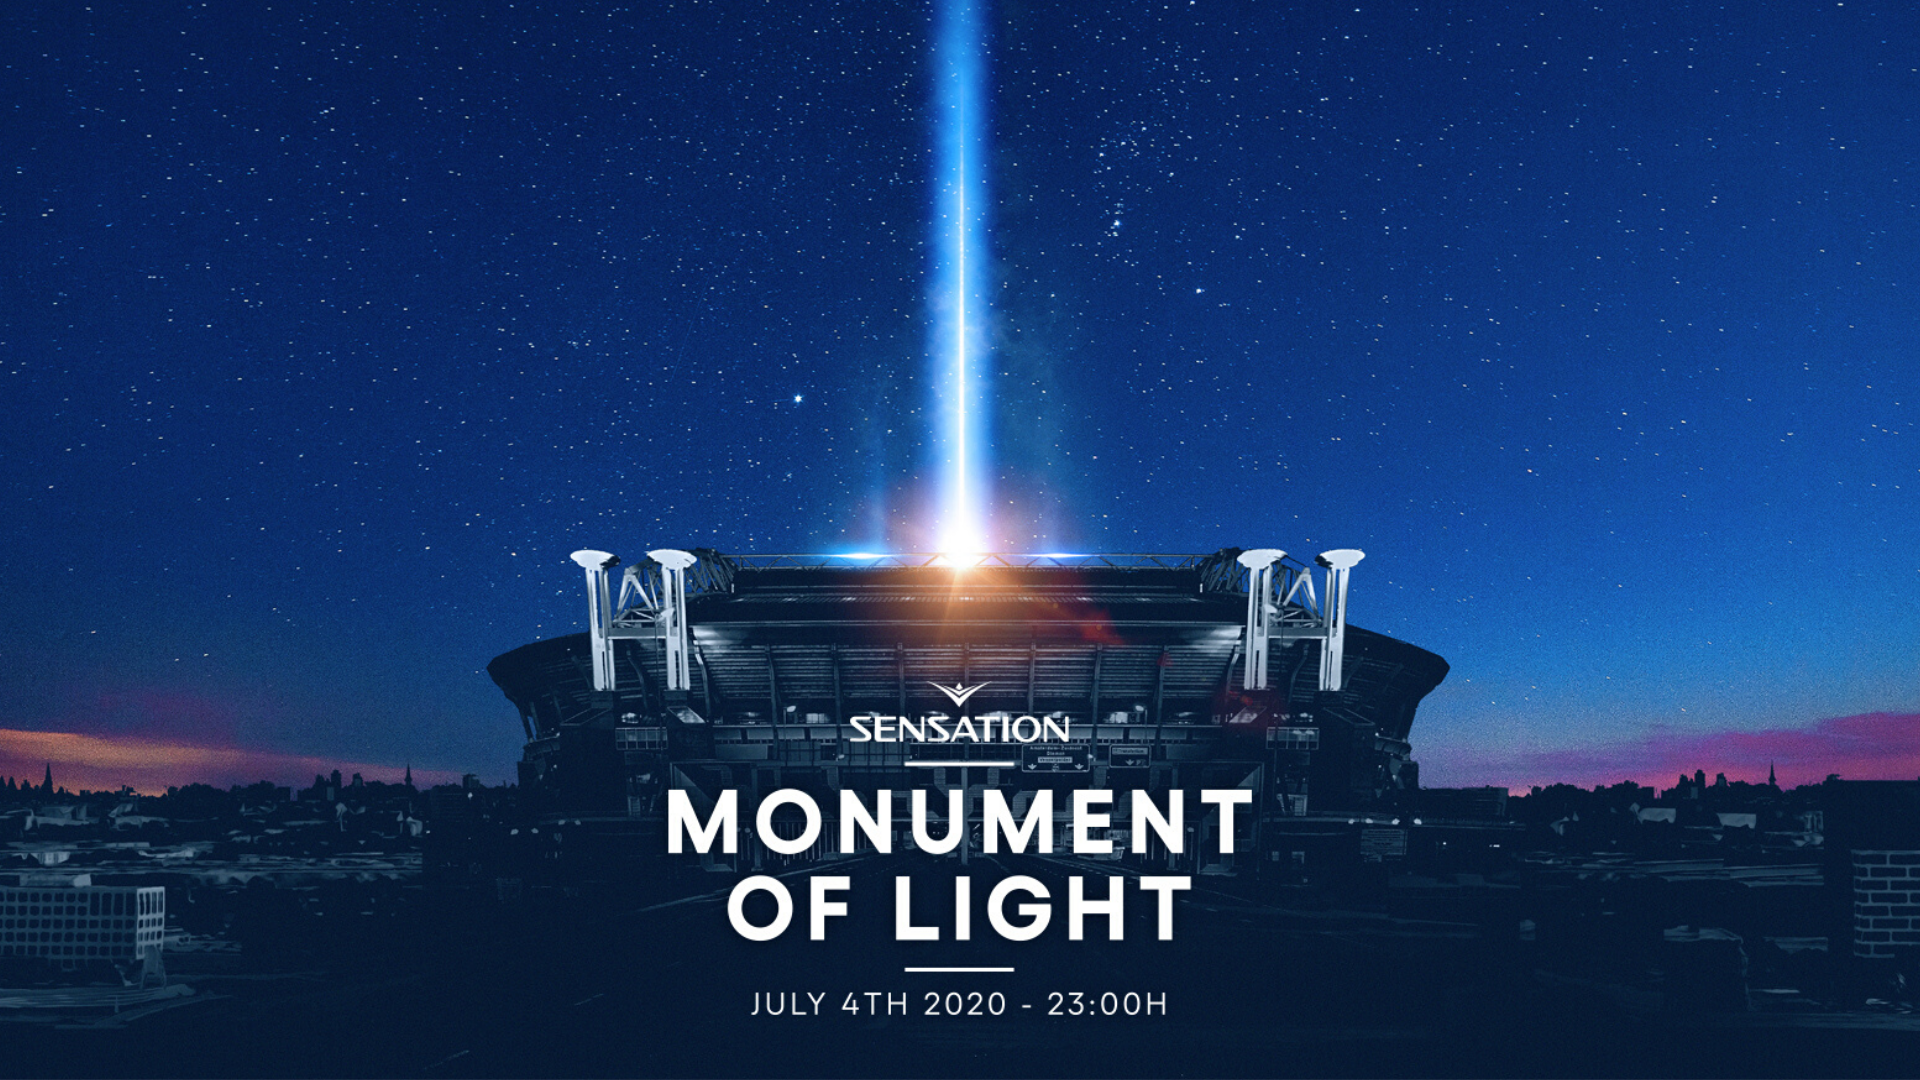 Sensation Monument of Light